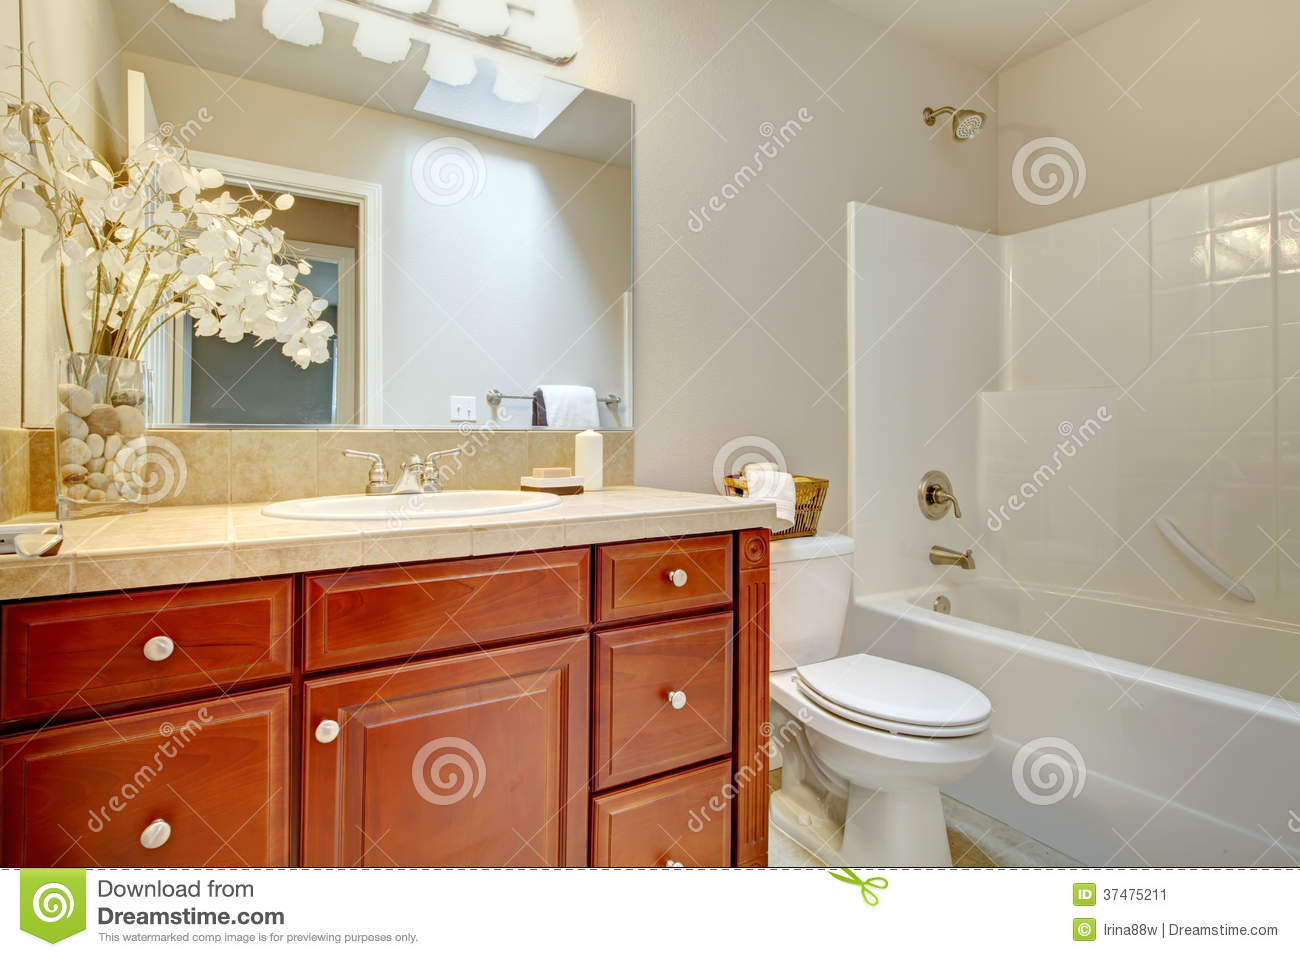 Beautiful bright bathroom with cherry wood cabinets. Beautiful Bright Bathroom With Cherry Wood Cabinets Stock Image